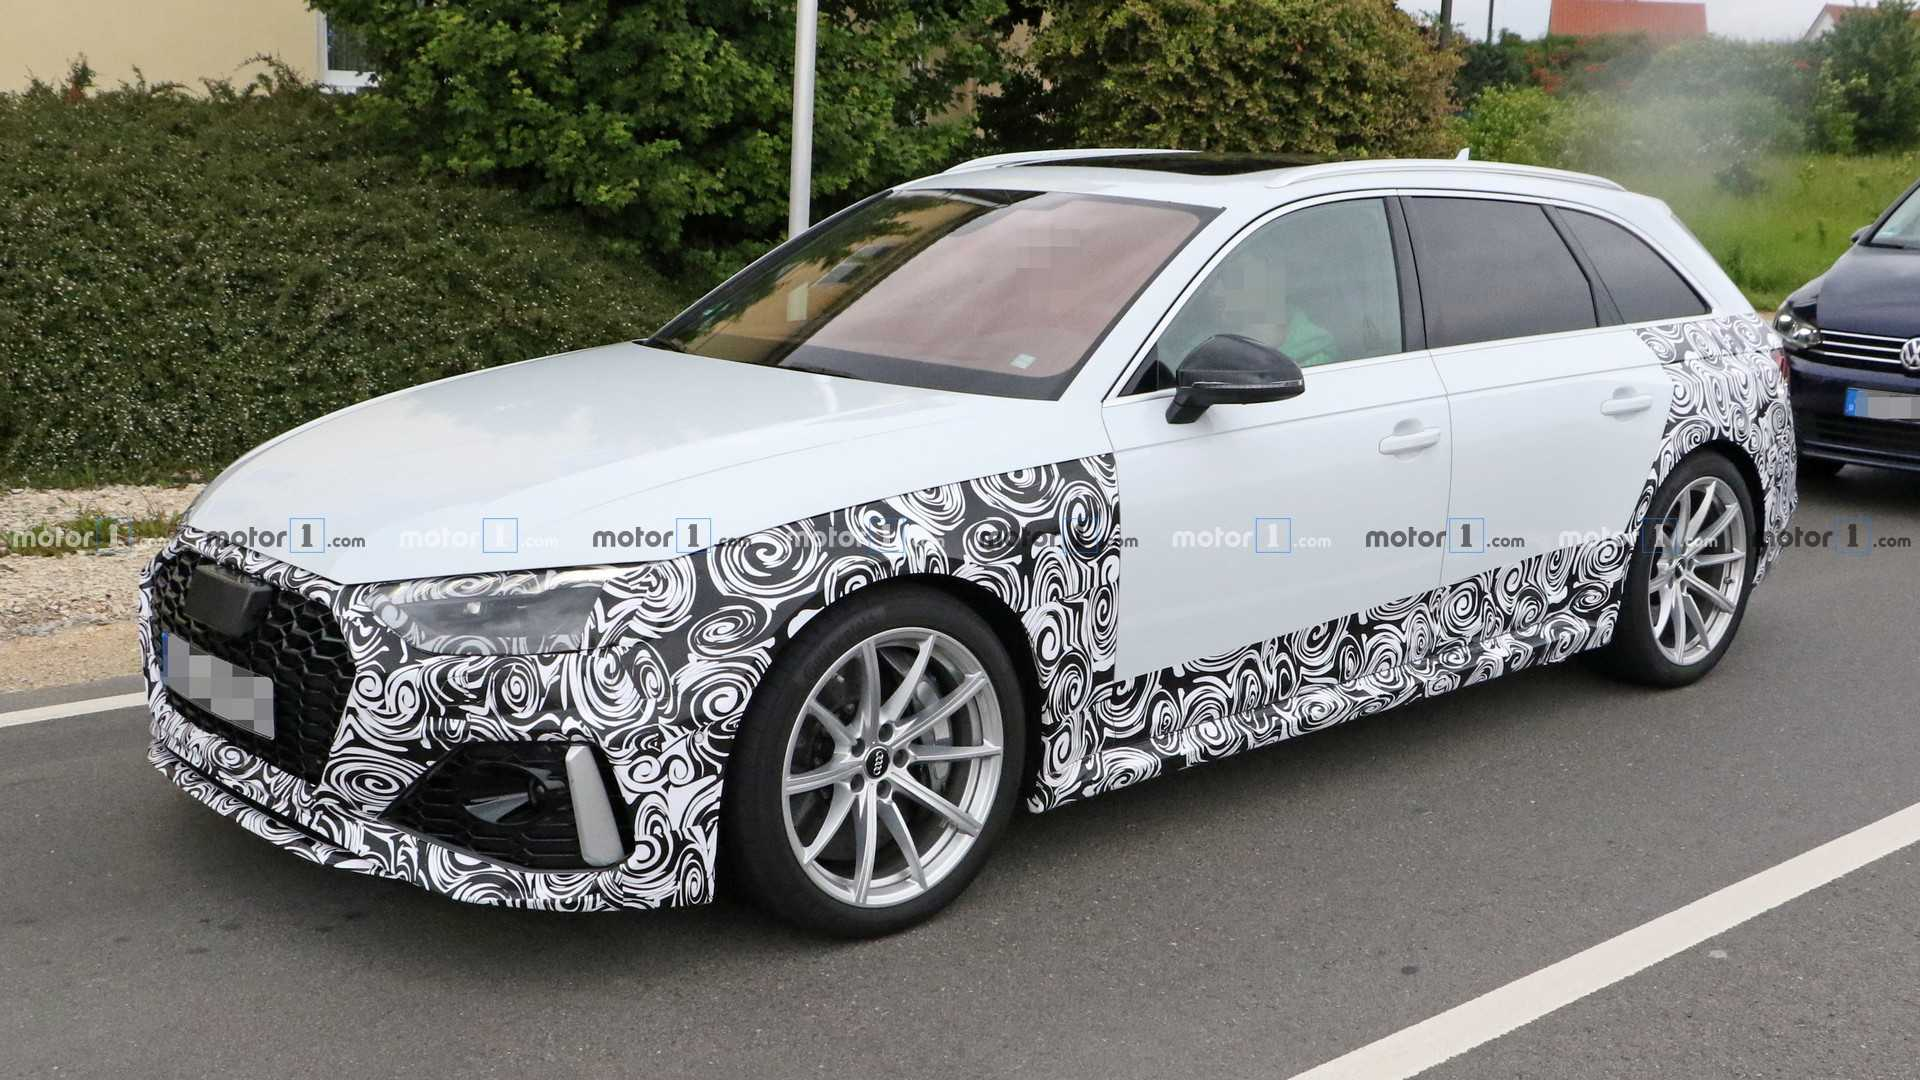 2020 Audi Rs4 Avant Spied Up Close Showing Its Facelift